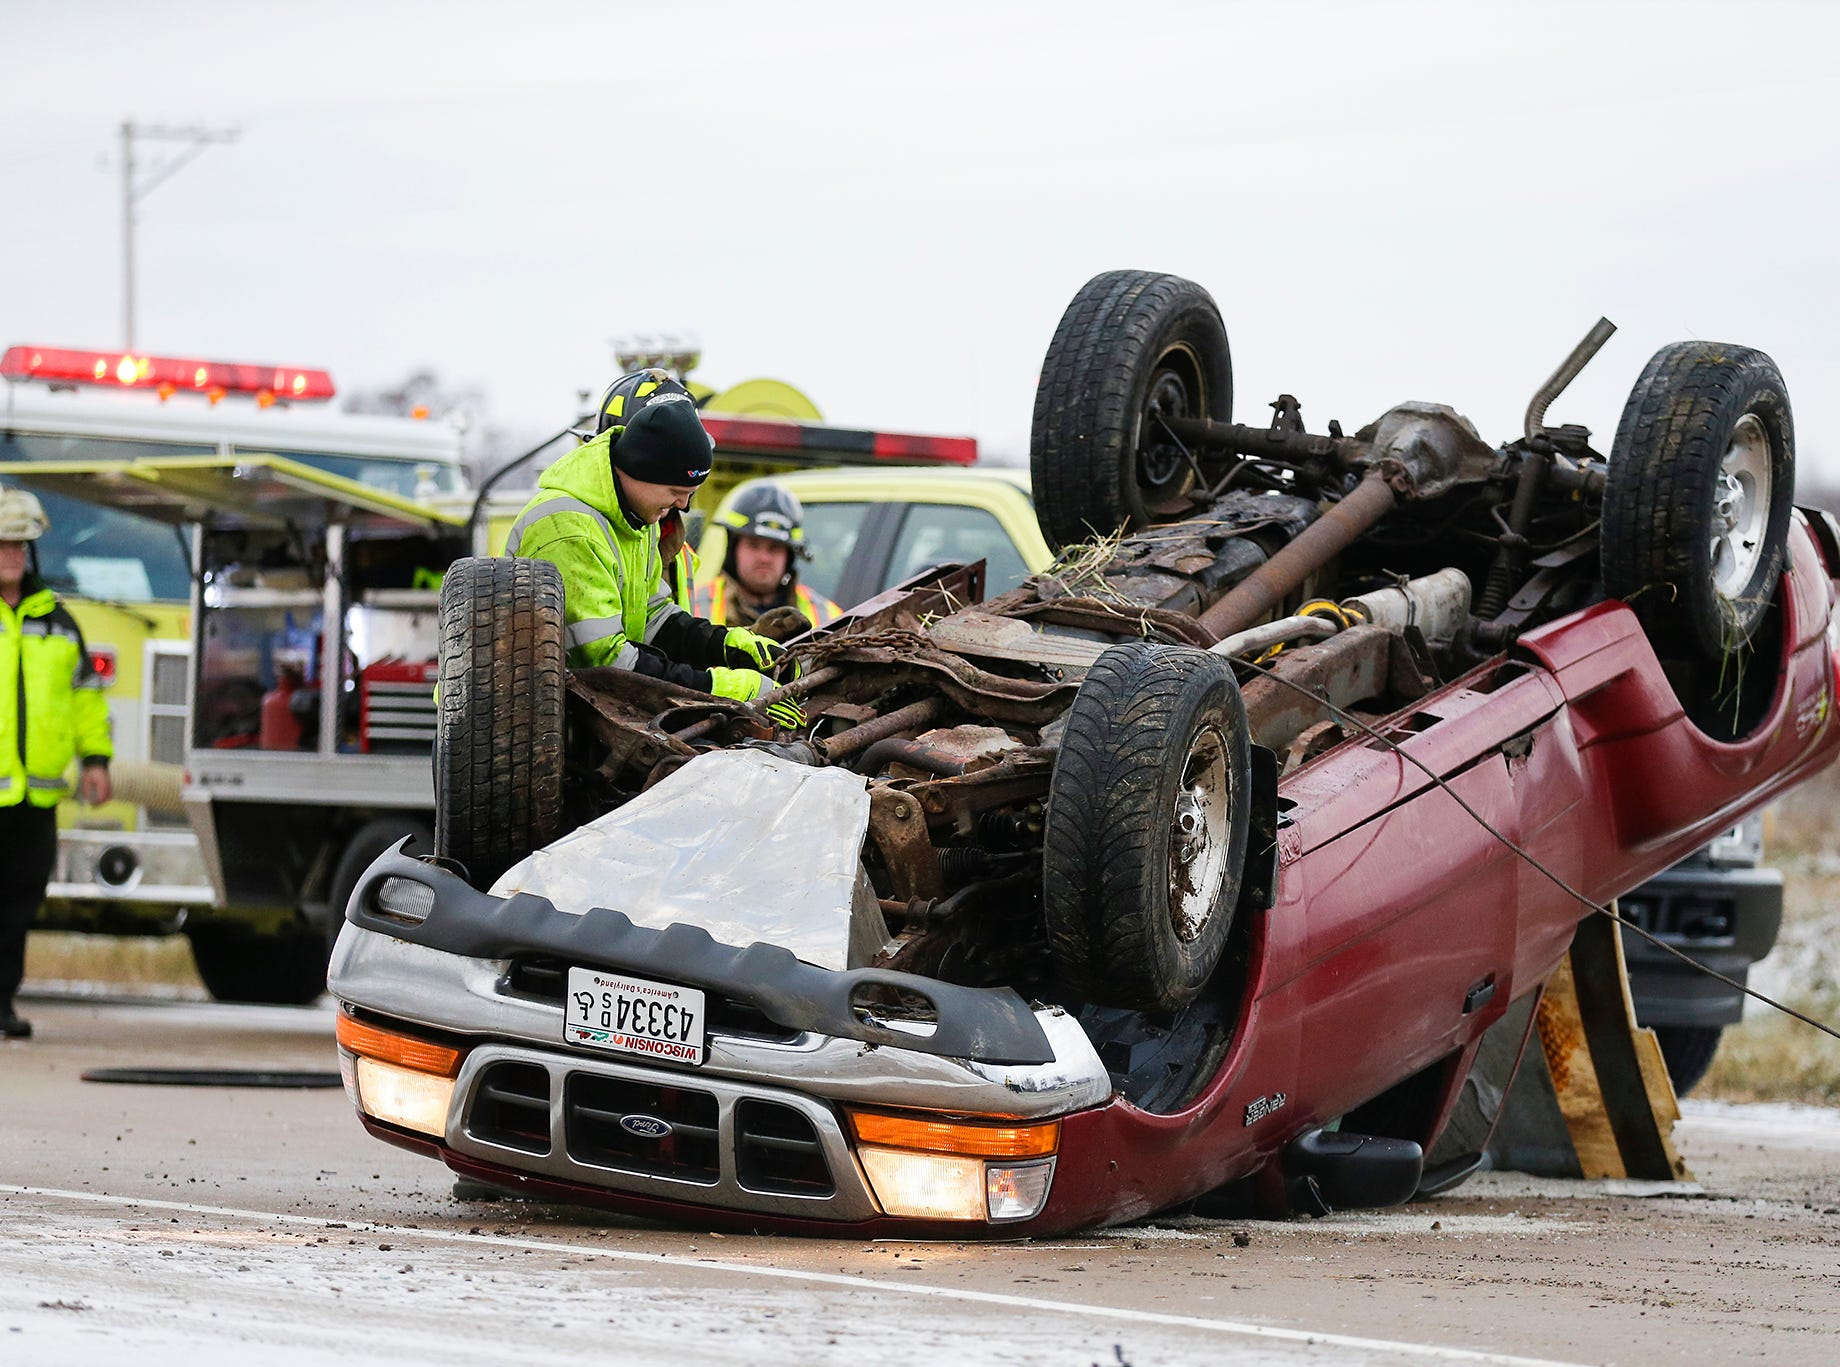 Emergency responders work the scene of a single vehicle crash Saturday, November 17, 2018 where a pick-up truck traveling south on State Highway 151 lost control and crossed the median and rolled onto it's roof in the north bound lanes of the highway. Doug Raflik/USA TODAY NETWORK-Wisconsin